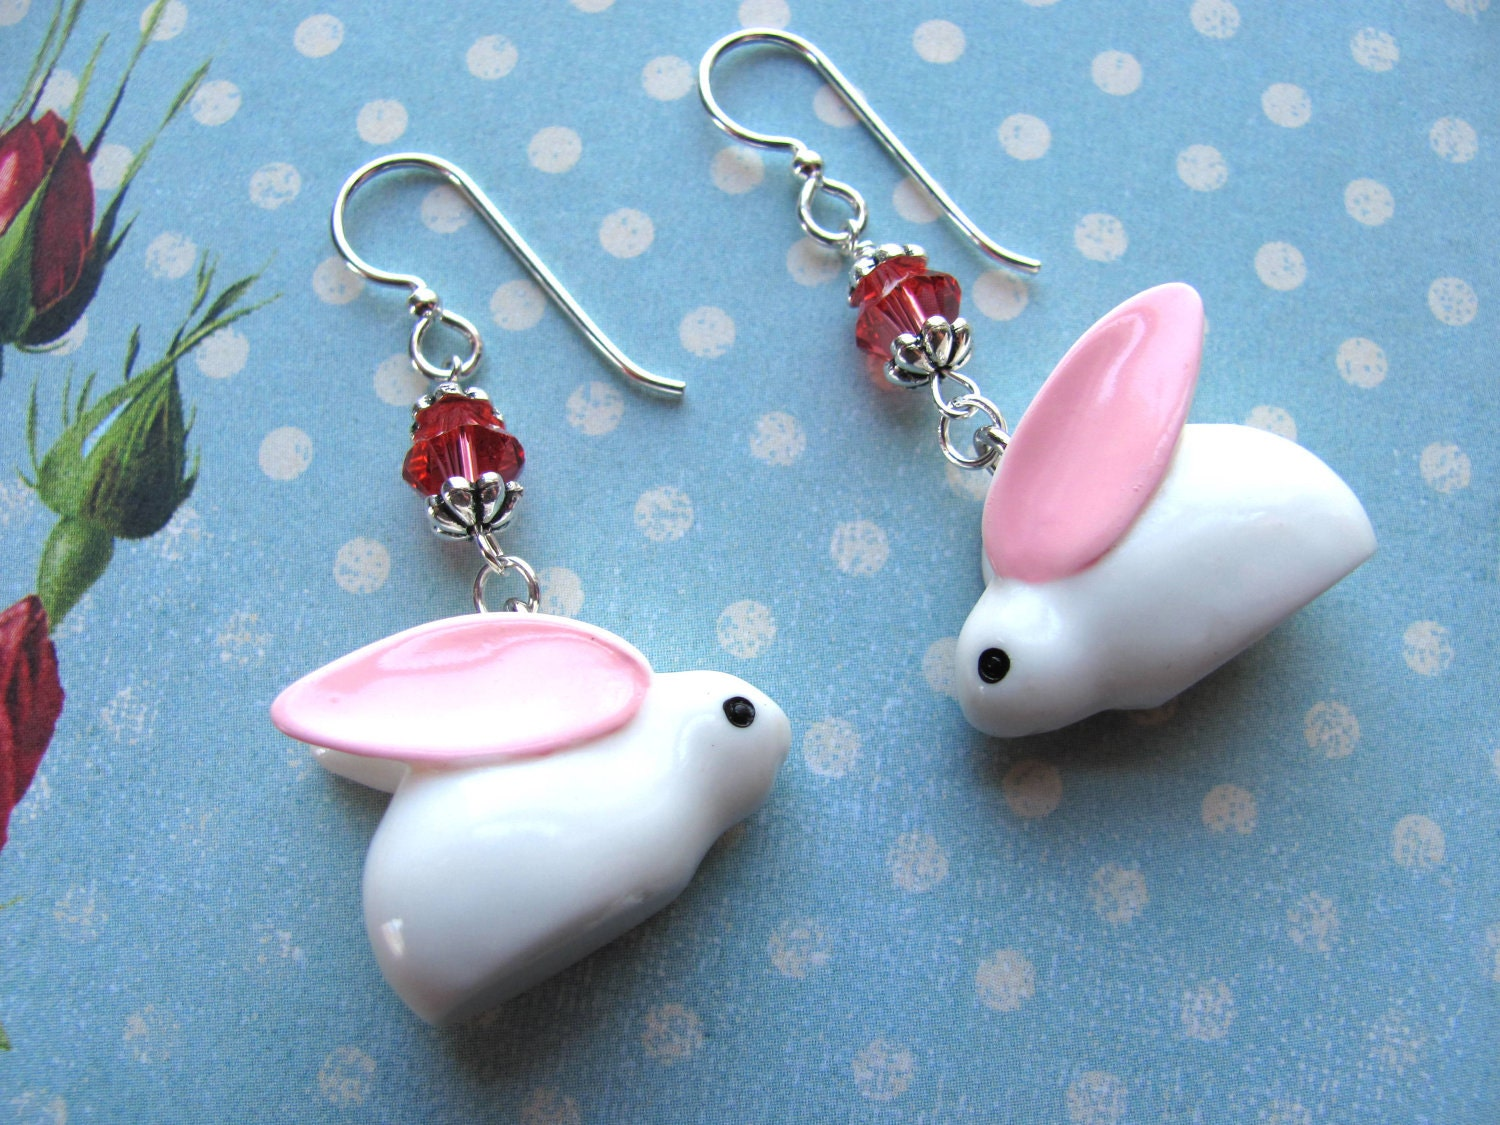 bunny earrings bunny earrings easter earrings earrings swarovski 756